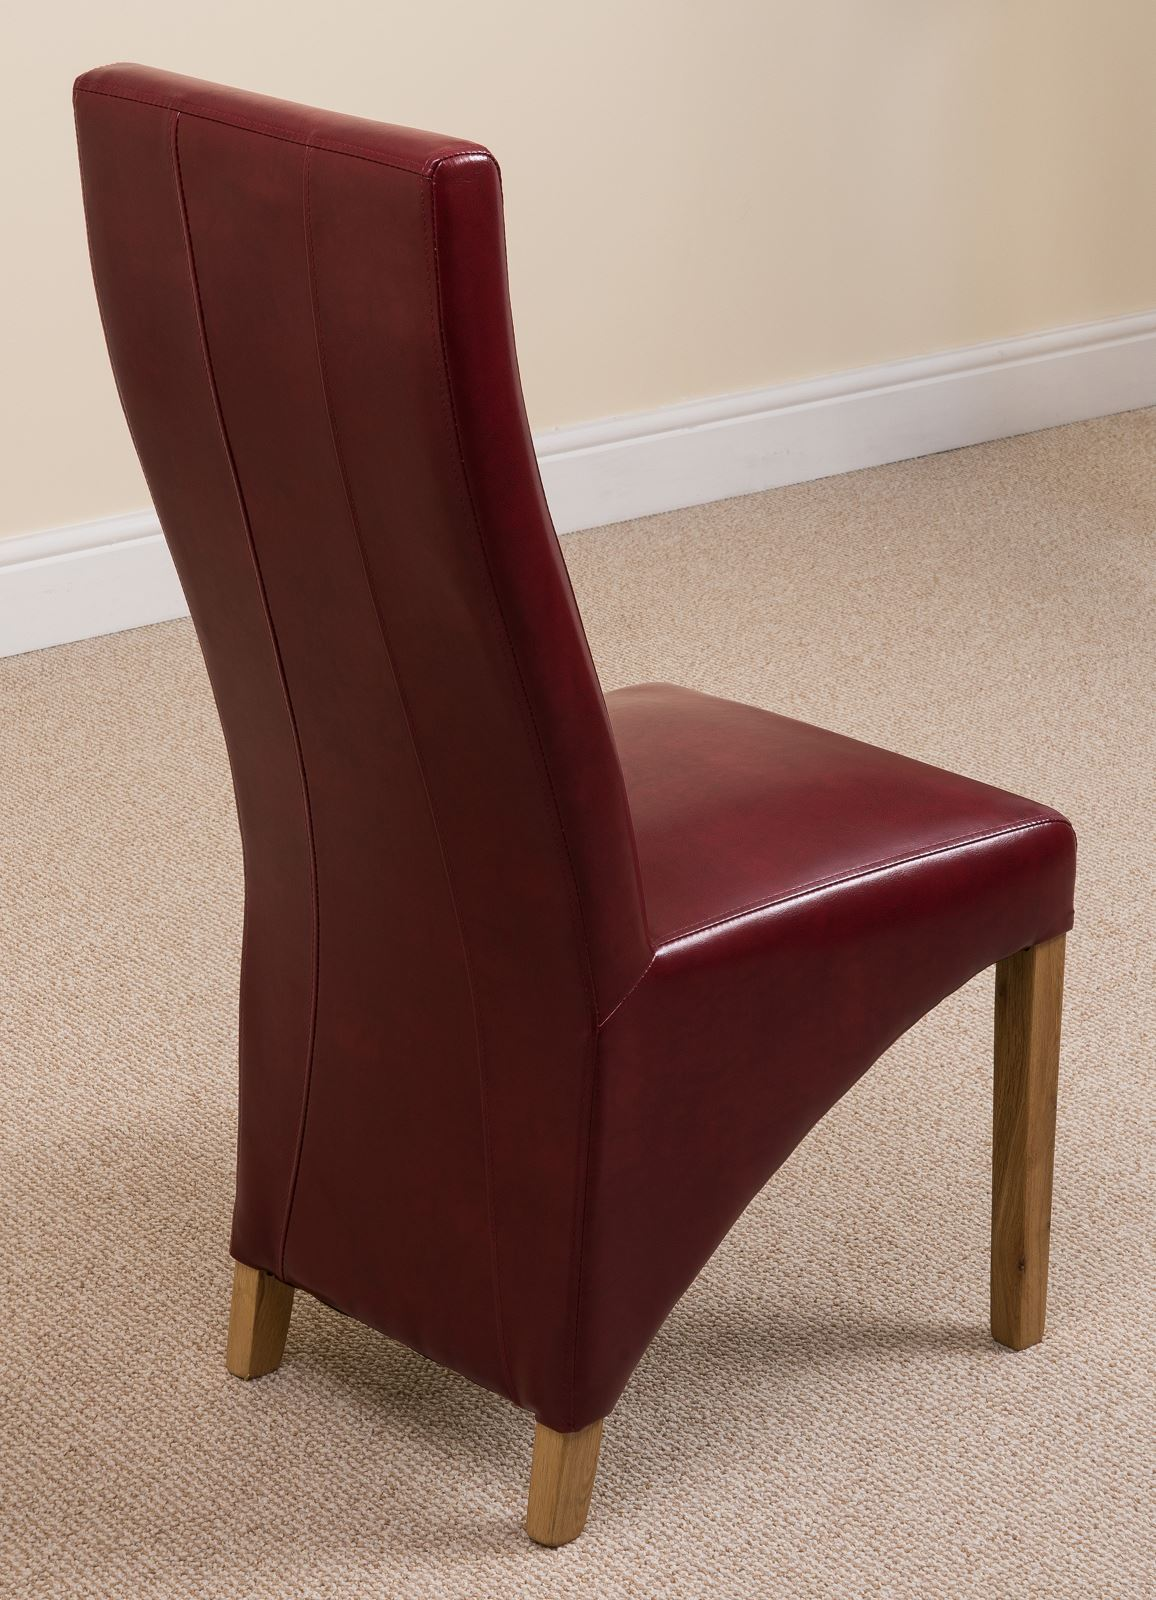 leather kitchen chairs karlstad armchair slipcover lola curved back red dining room